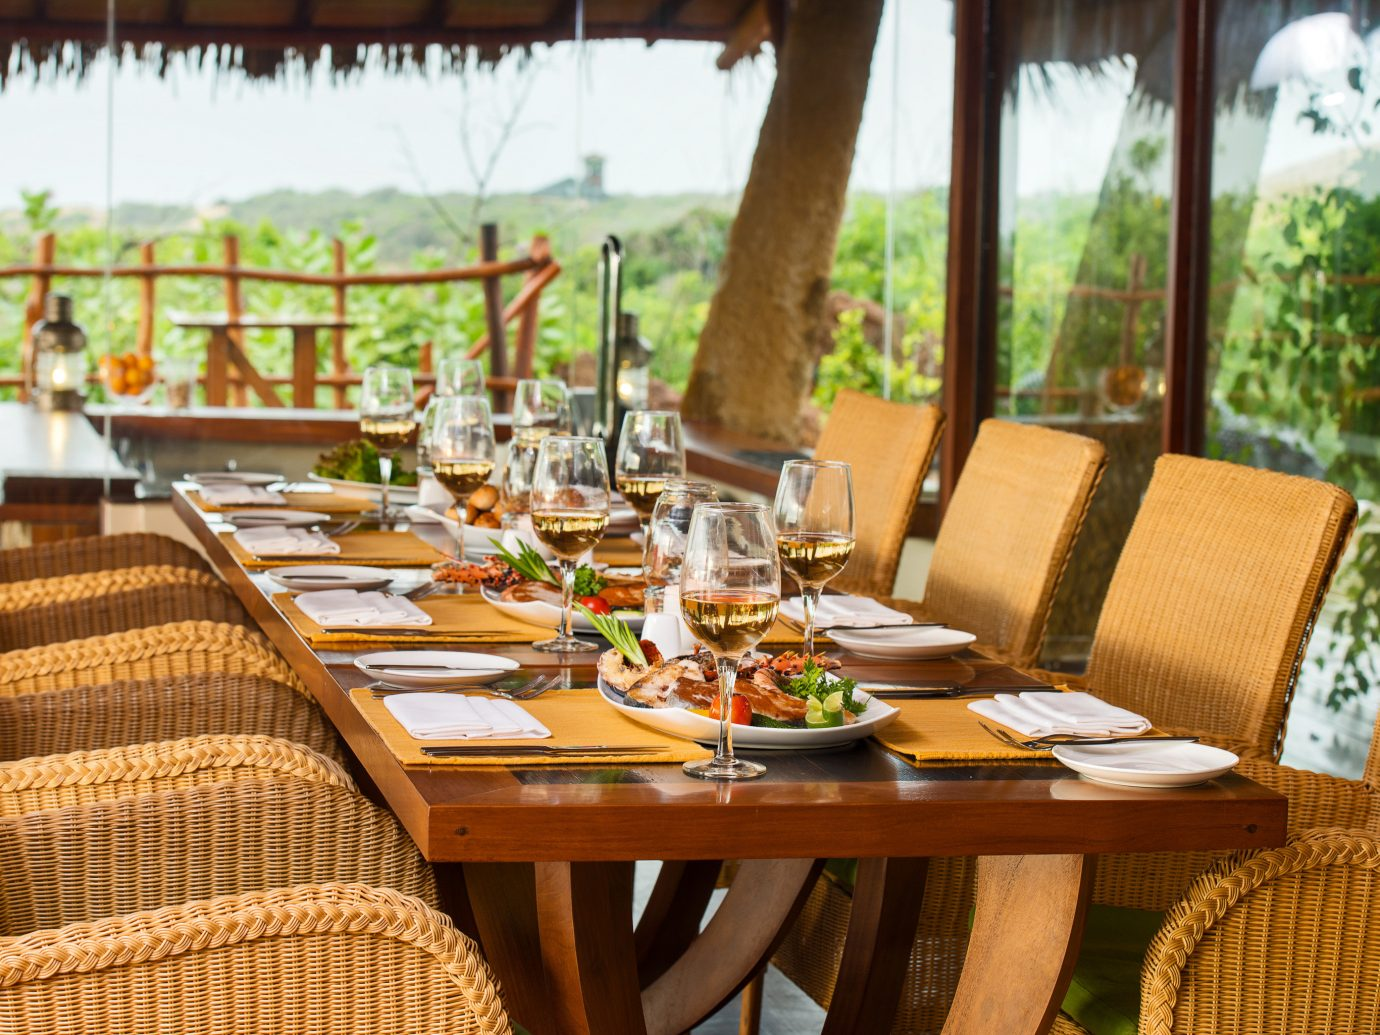 All-Inclusive Resorts Beach Hotels table chair Resort Dining meal restaurant brunch outdoor structure vacation dining room set dining table